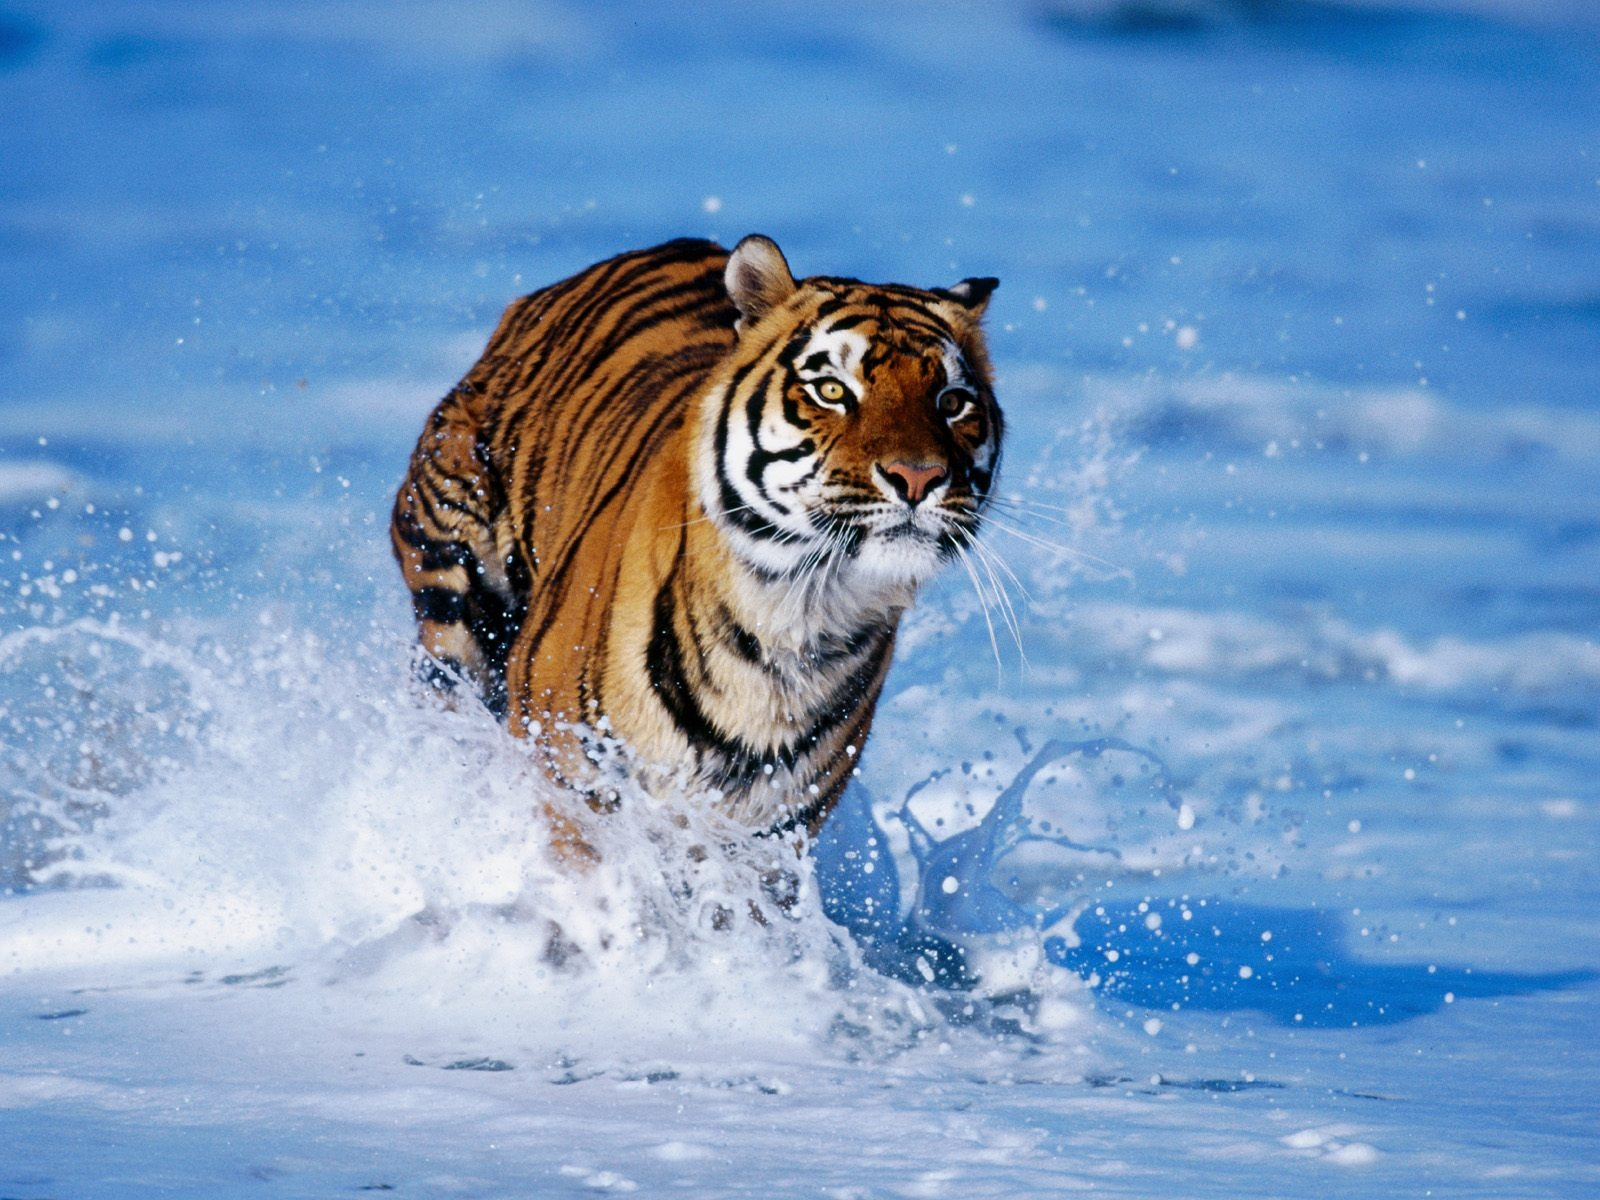 Wallpaper Tiger Download